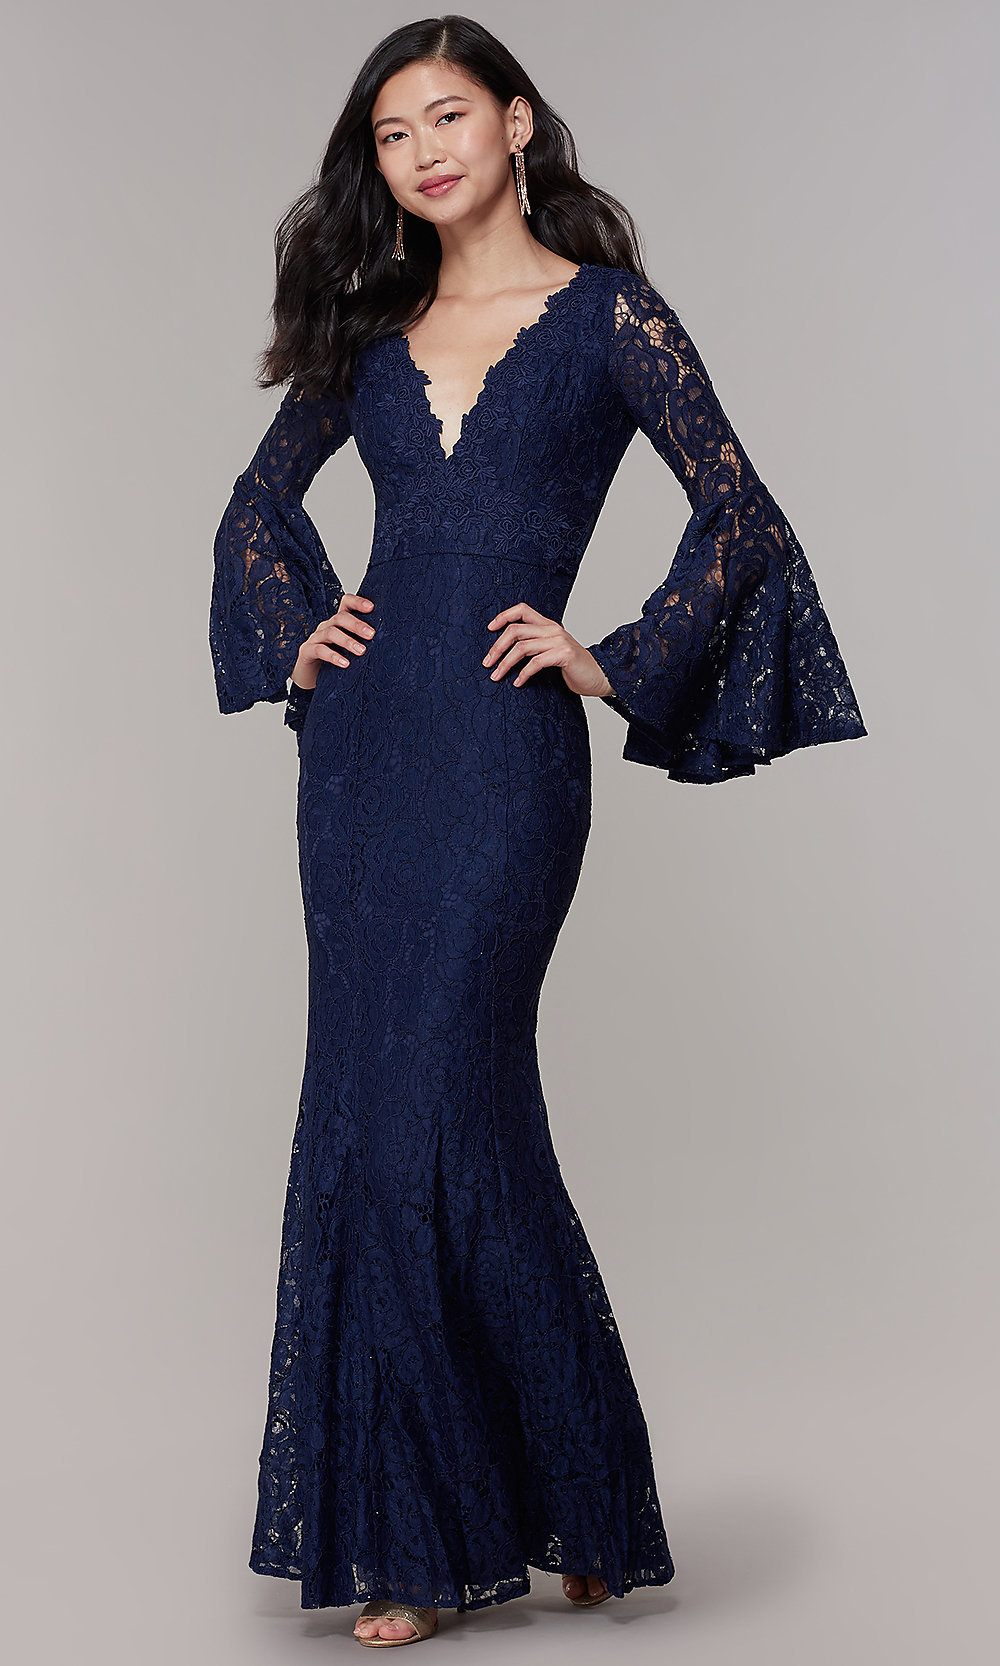 Navy Blue Dresses For Wedding Long Raveitsafe